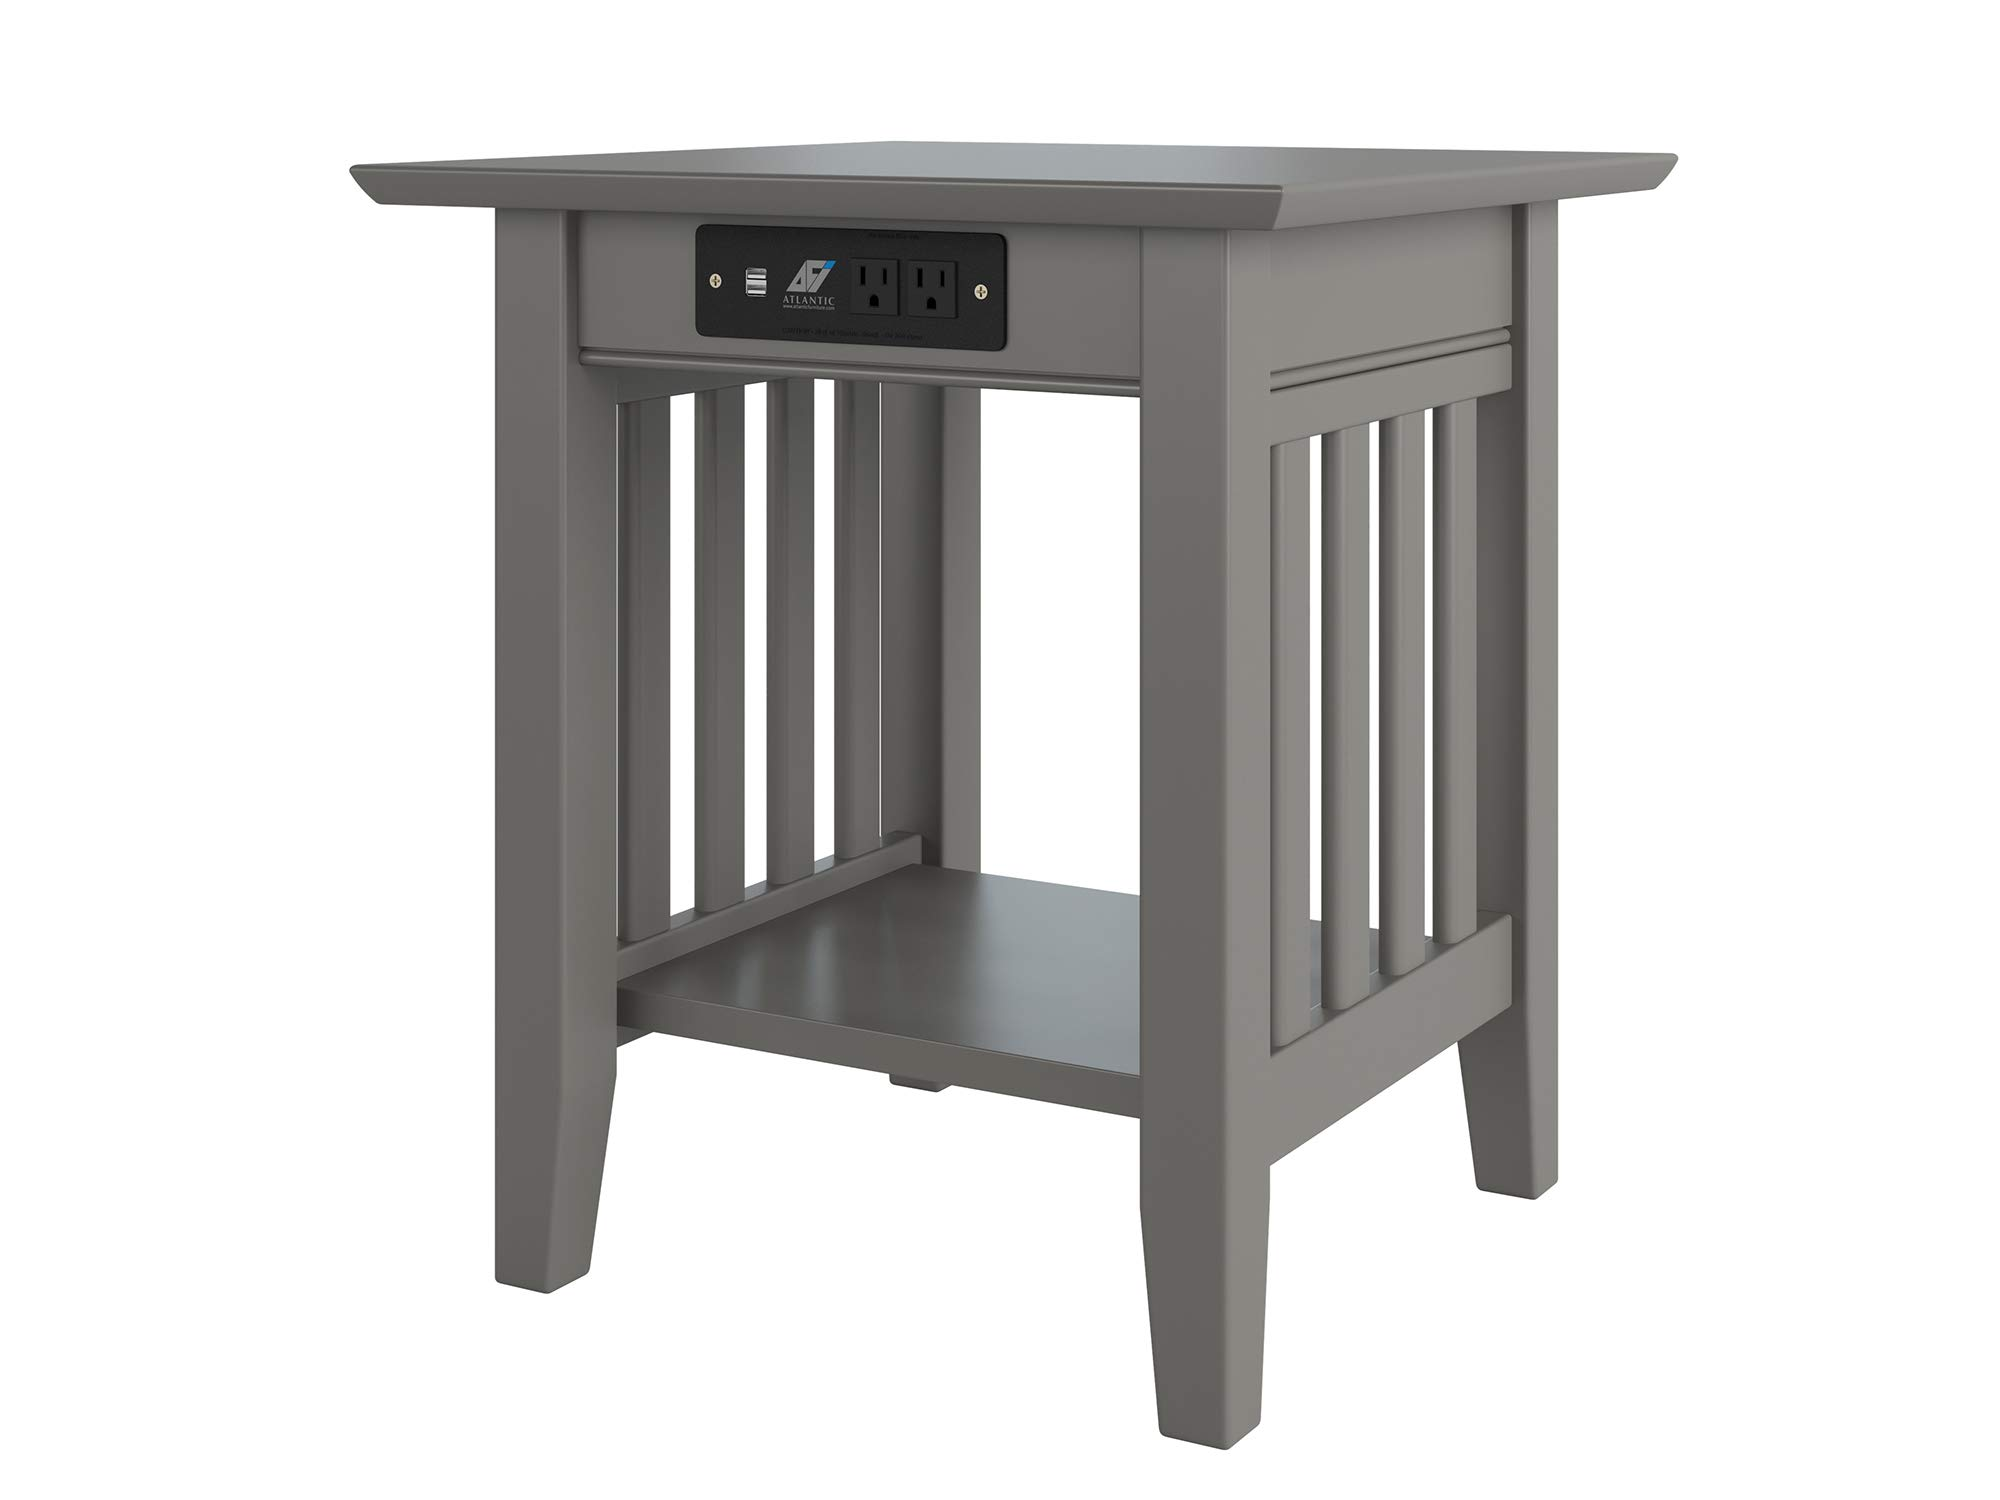 Atlantic Furniture AH14219 Mission End Table with Charging Station, Grey by Atlantic Furniture